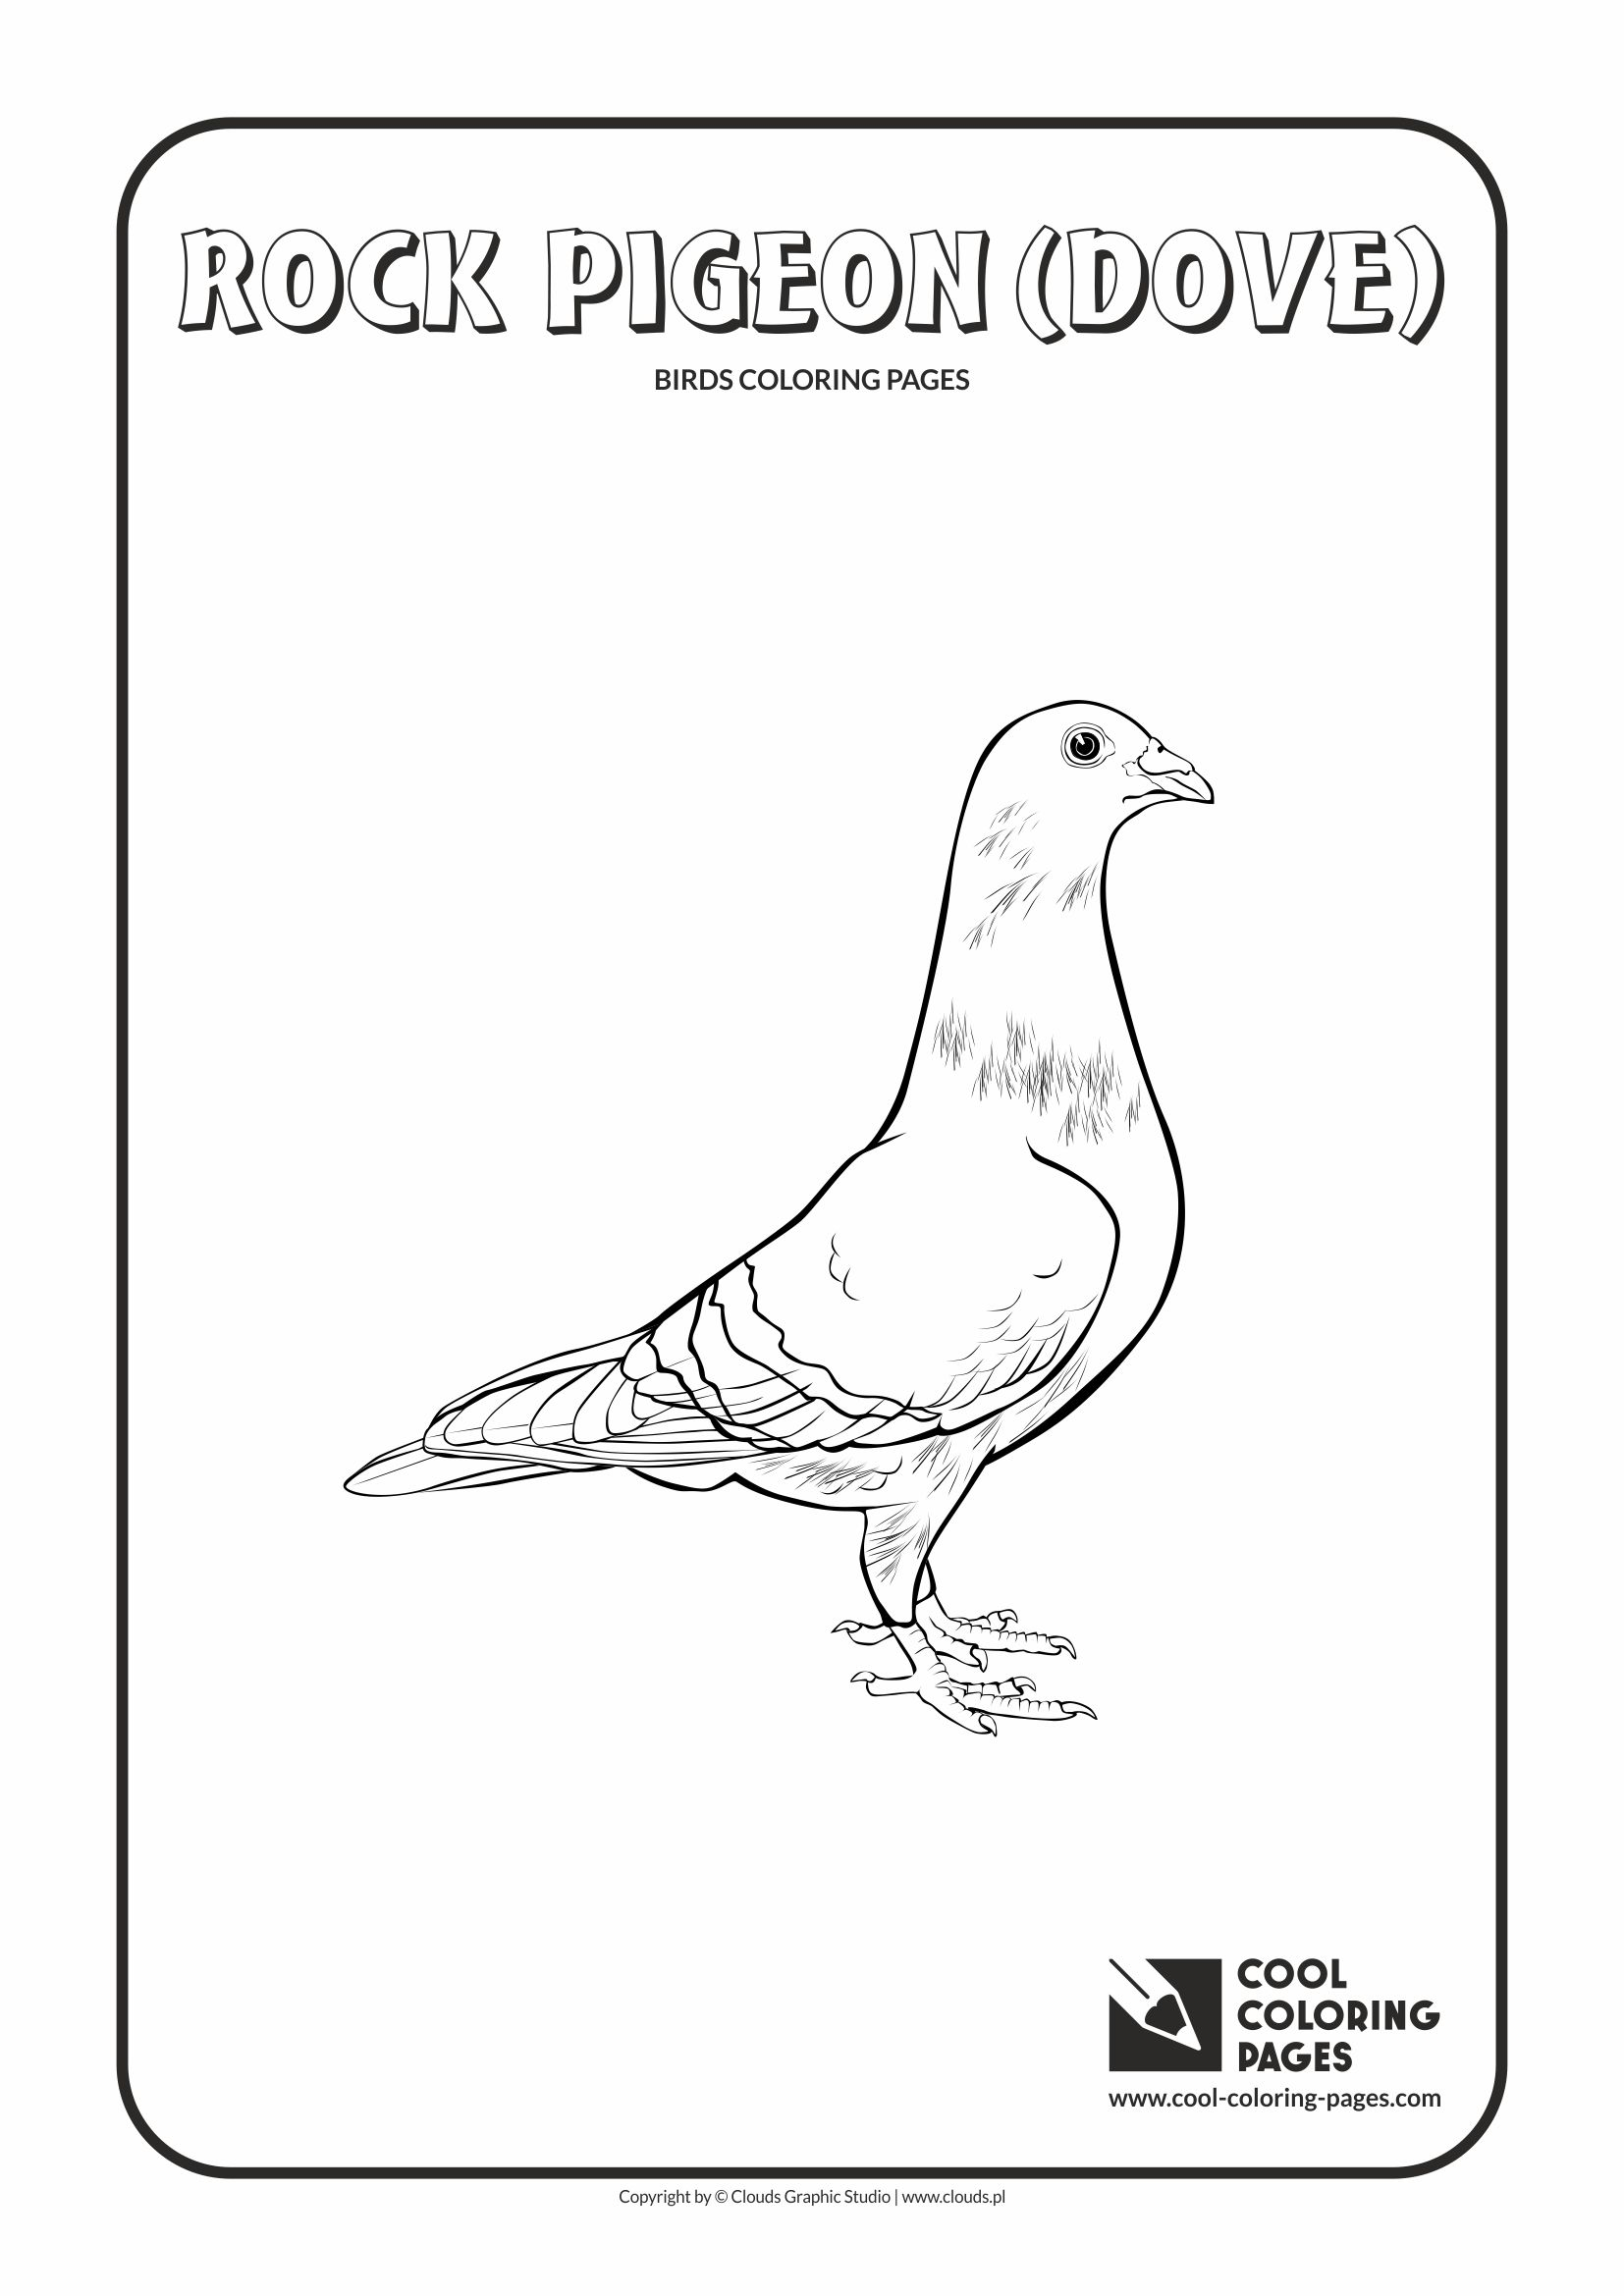 Cool Coloring Pages   Animals / Rock Pigeon / Coloring Page With Rock Pigeon